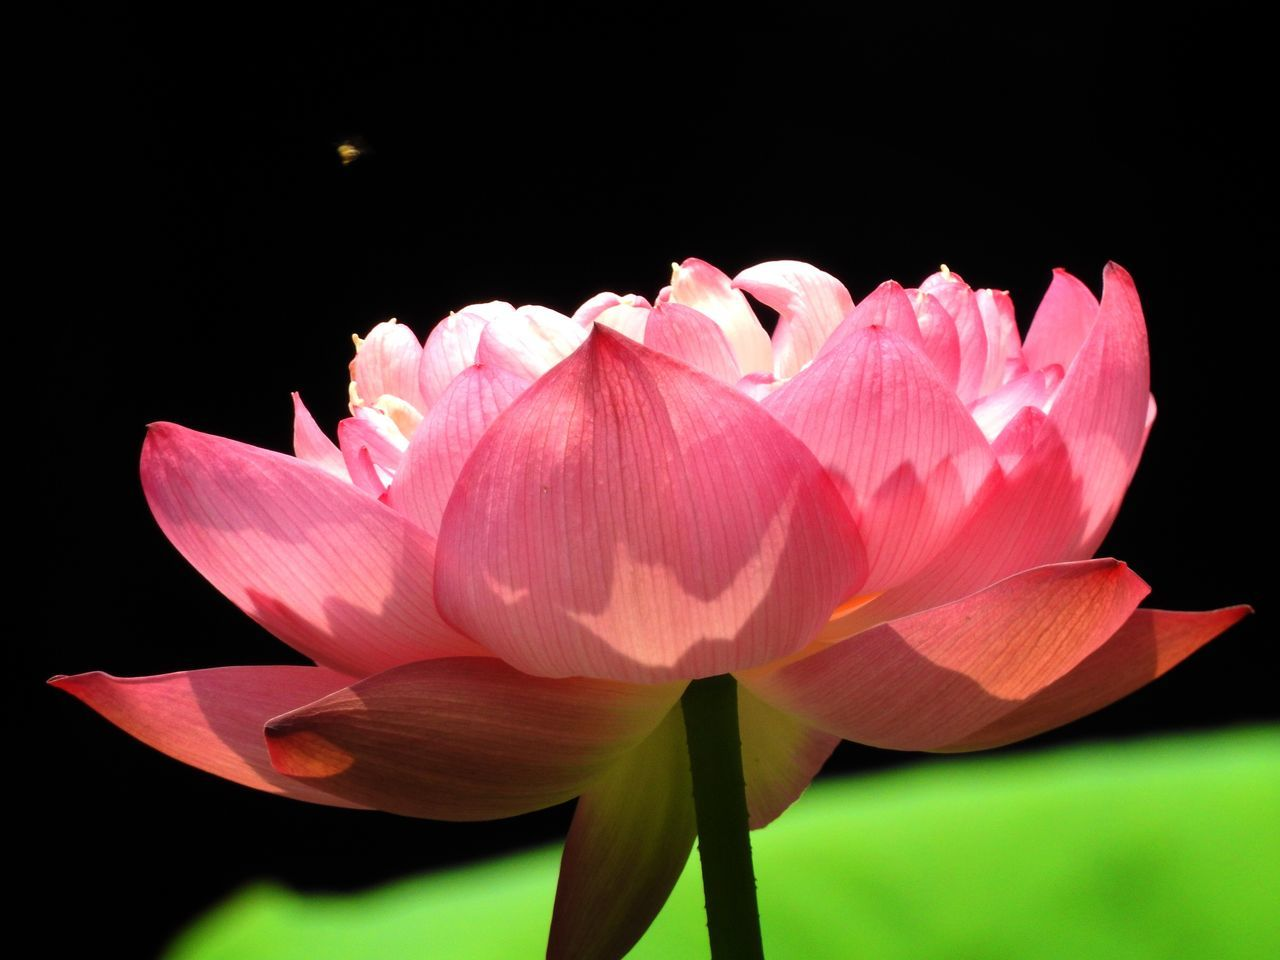 Flower Petal Beauty In Nature Fragility Flower Head Nature Freshness Growth Pink Color Blooming Close-up No People Black Background Plant Outdoors Day Sky